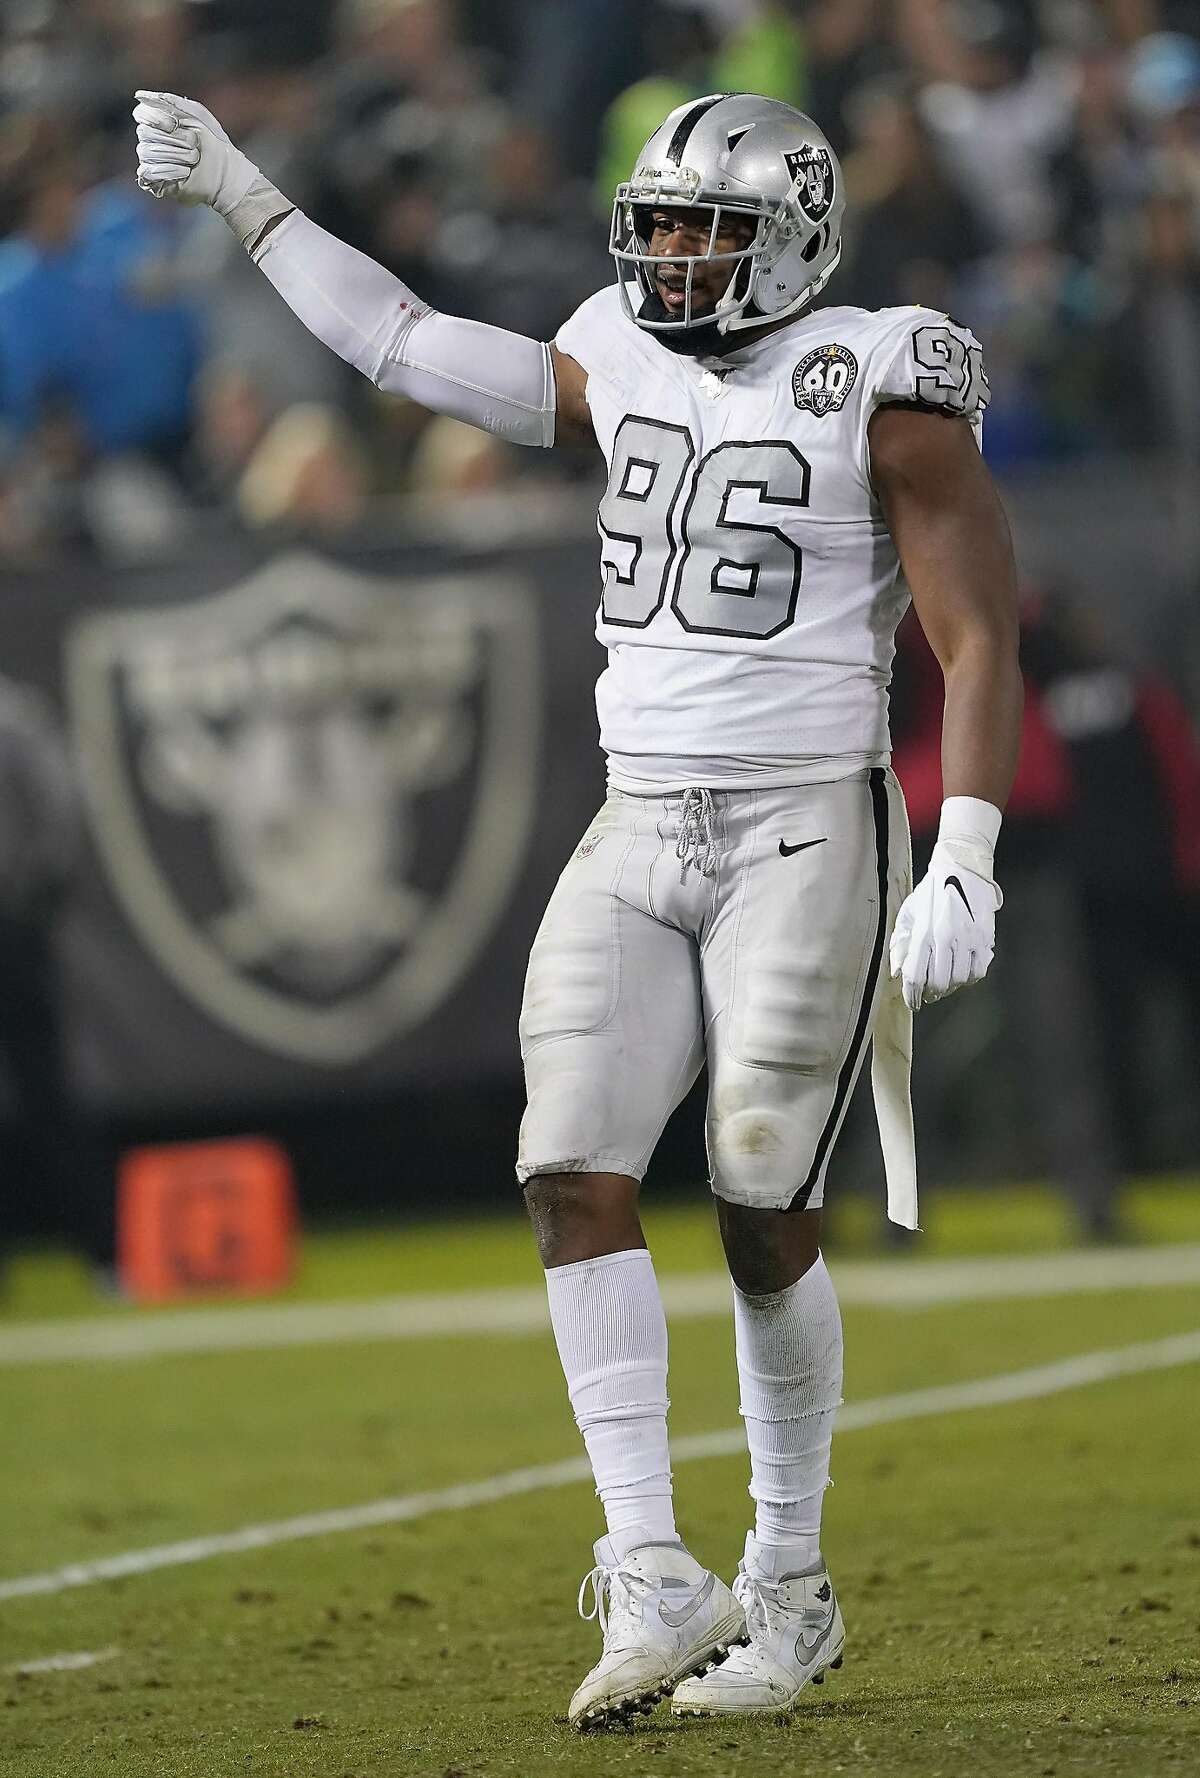 OAKLAND, CALIFORNIA - NOVEMBER 07: Clelin Ferrell #96 of the Oakland Raiders celebrates after sacking quarterback Philip Rivers #17 of the Los Angeles Chargers during the fourth quarter at RingCentral Coliseum on November 07, 2019 in Oakland, California. (Photo by Thearon W. Henderson/Getty Images)